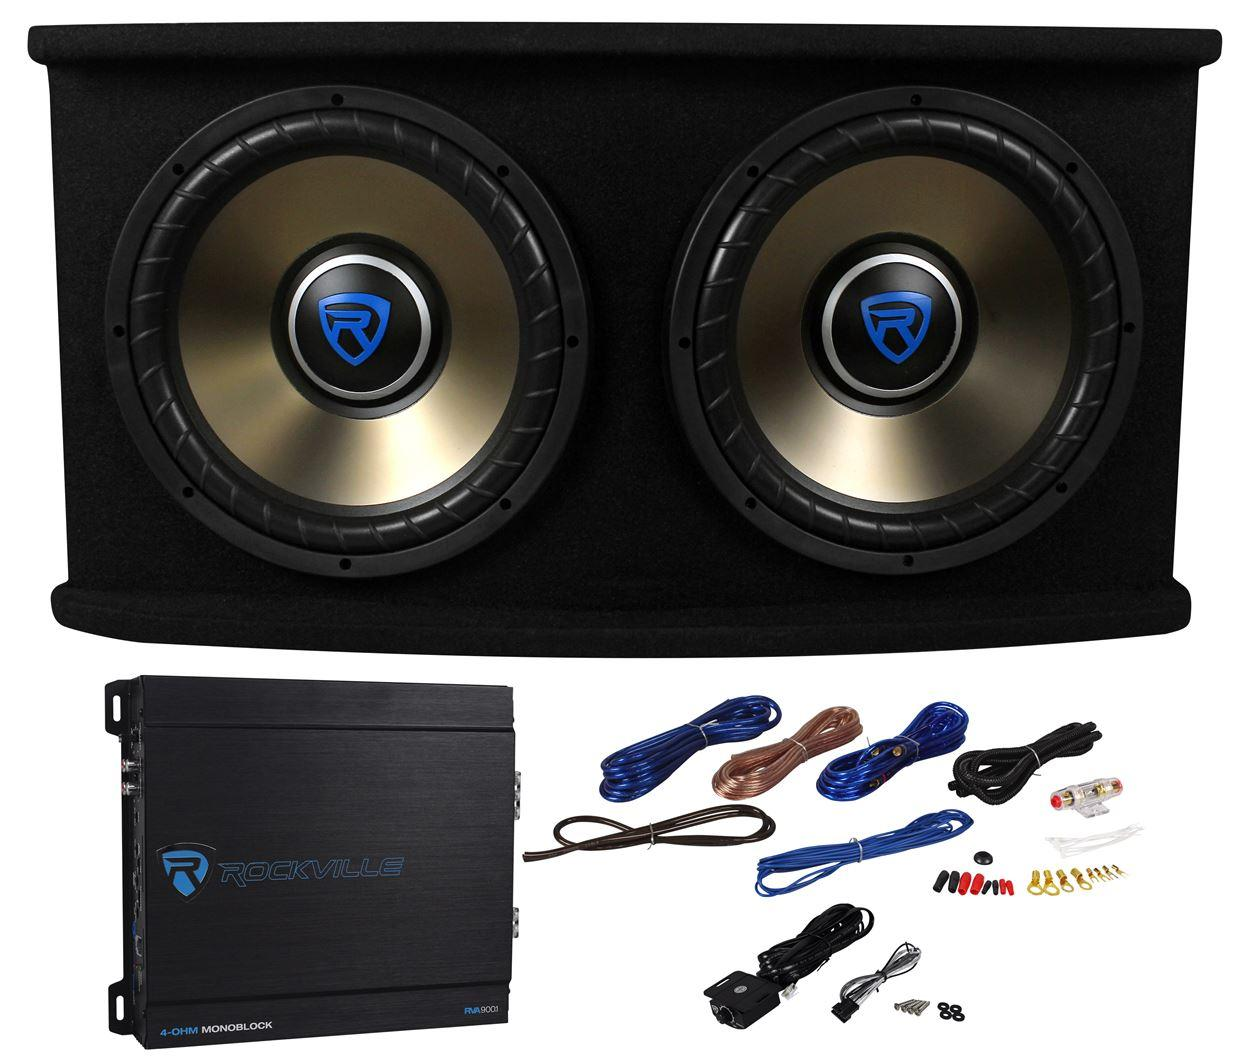 Rockville Rvspl122 Dual 12 1800w Car Subwoofer Sub Box Jl Audio Amp Wiring Wires Bass Package